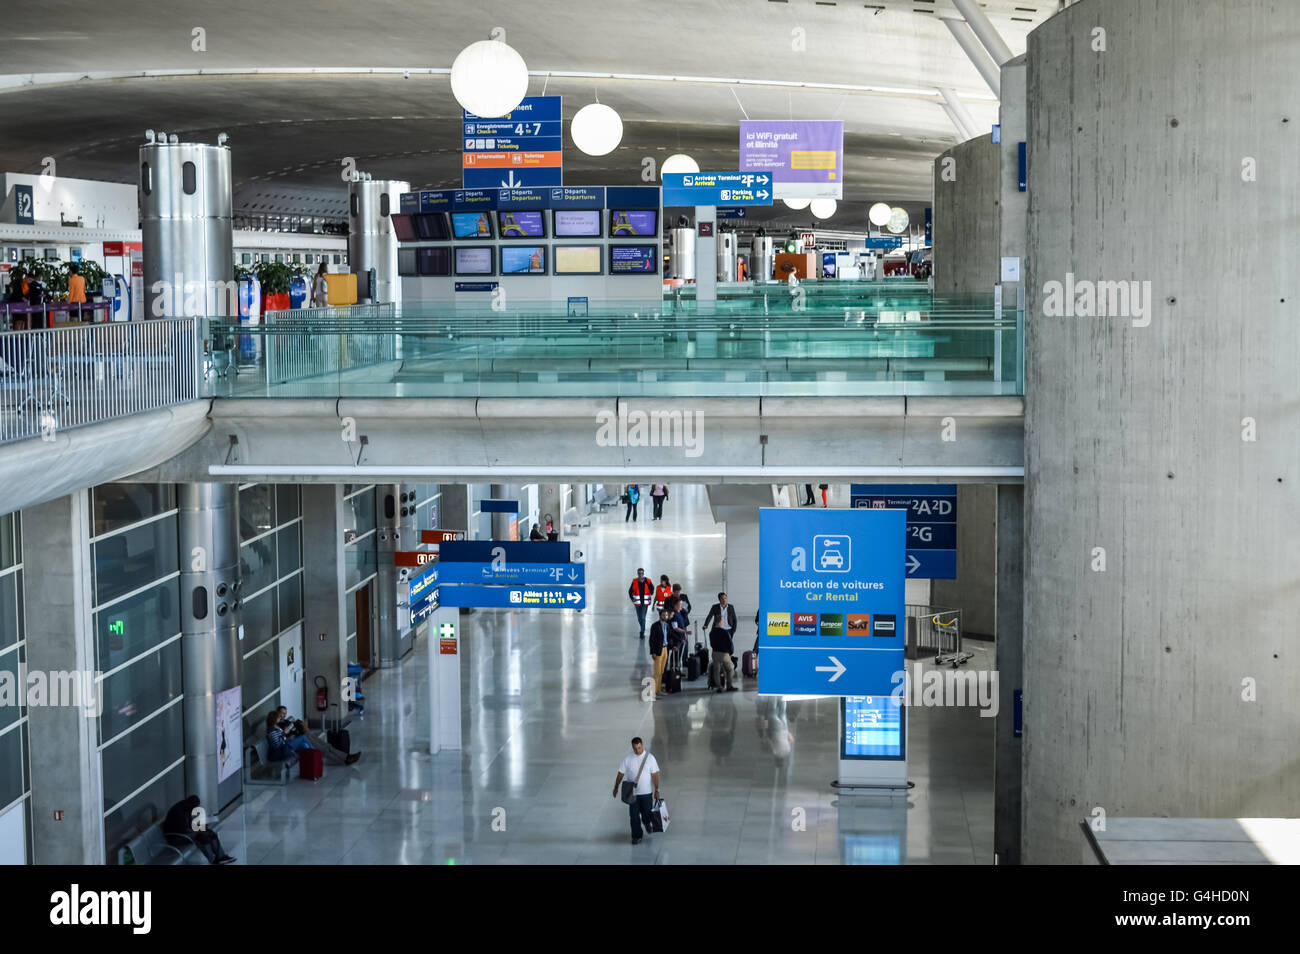 Airport hall - Charles de Gaulle terminal F in Paris, France - Stock Image